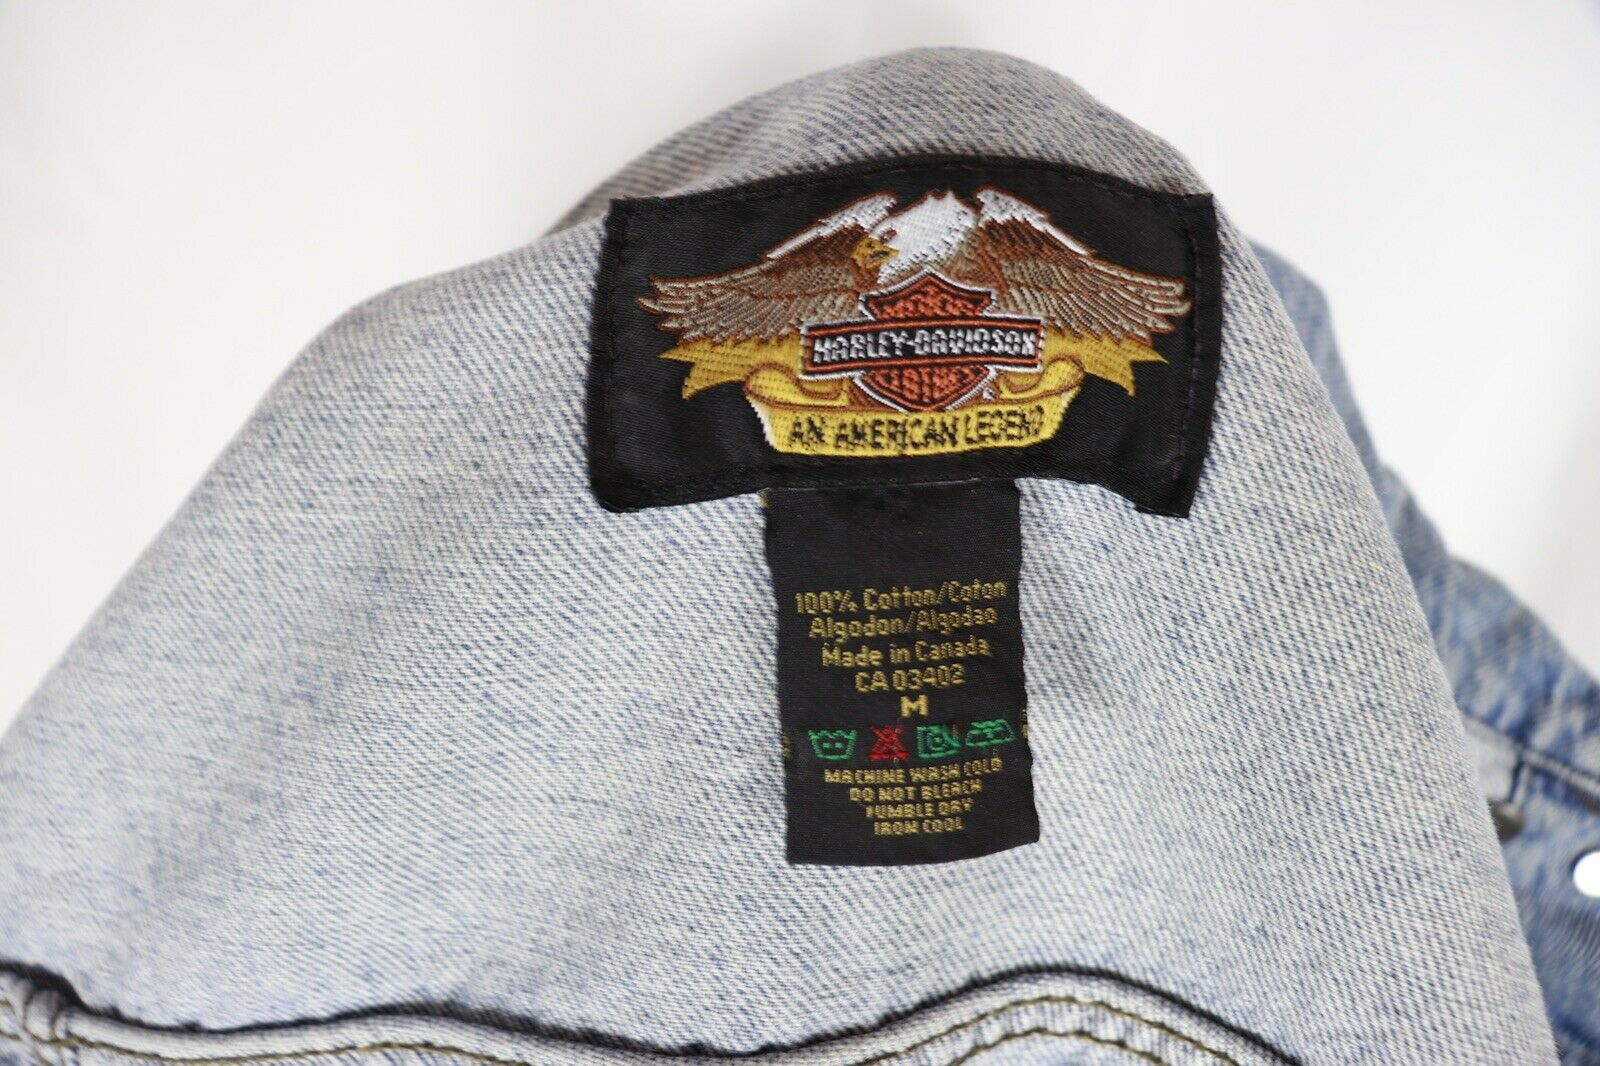 Harley Davidson Womens Womens Womens Jeans Vest With Patches Medium e0ed96